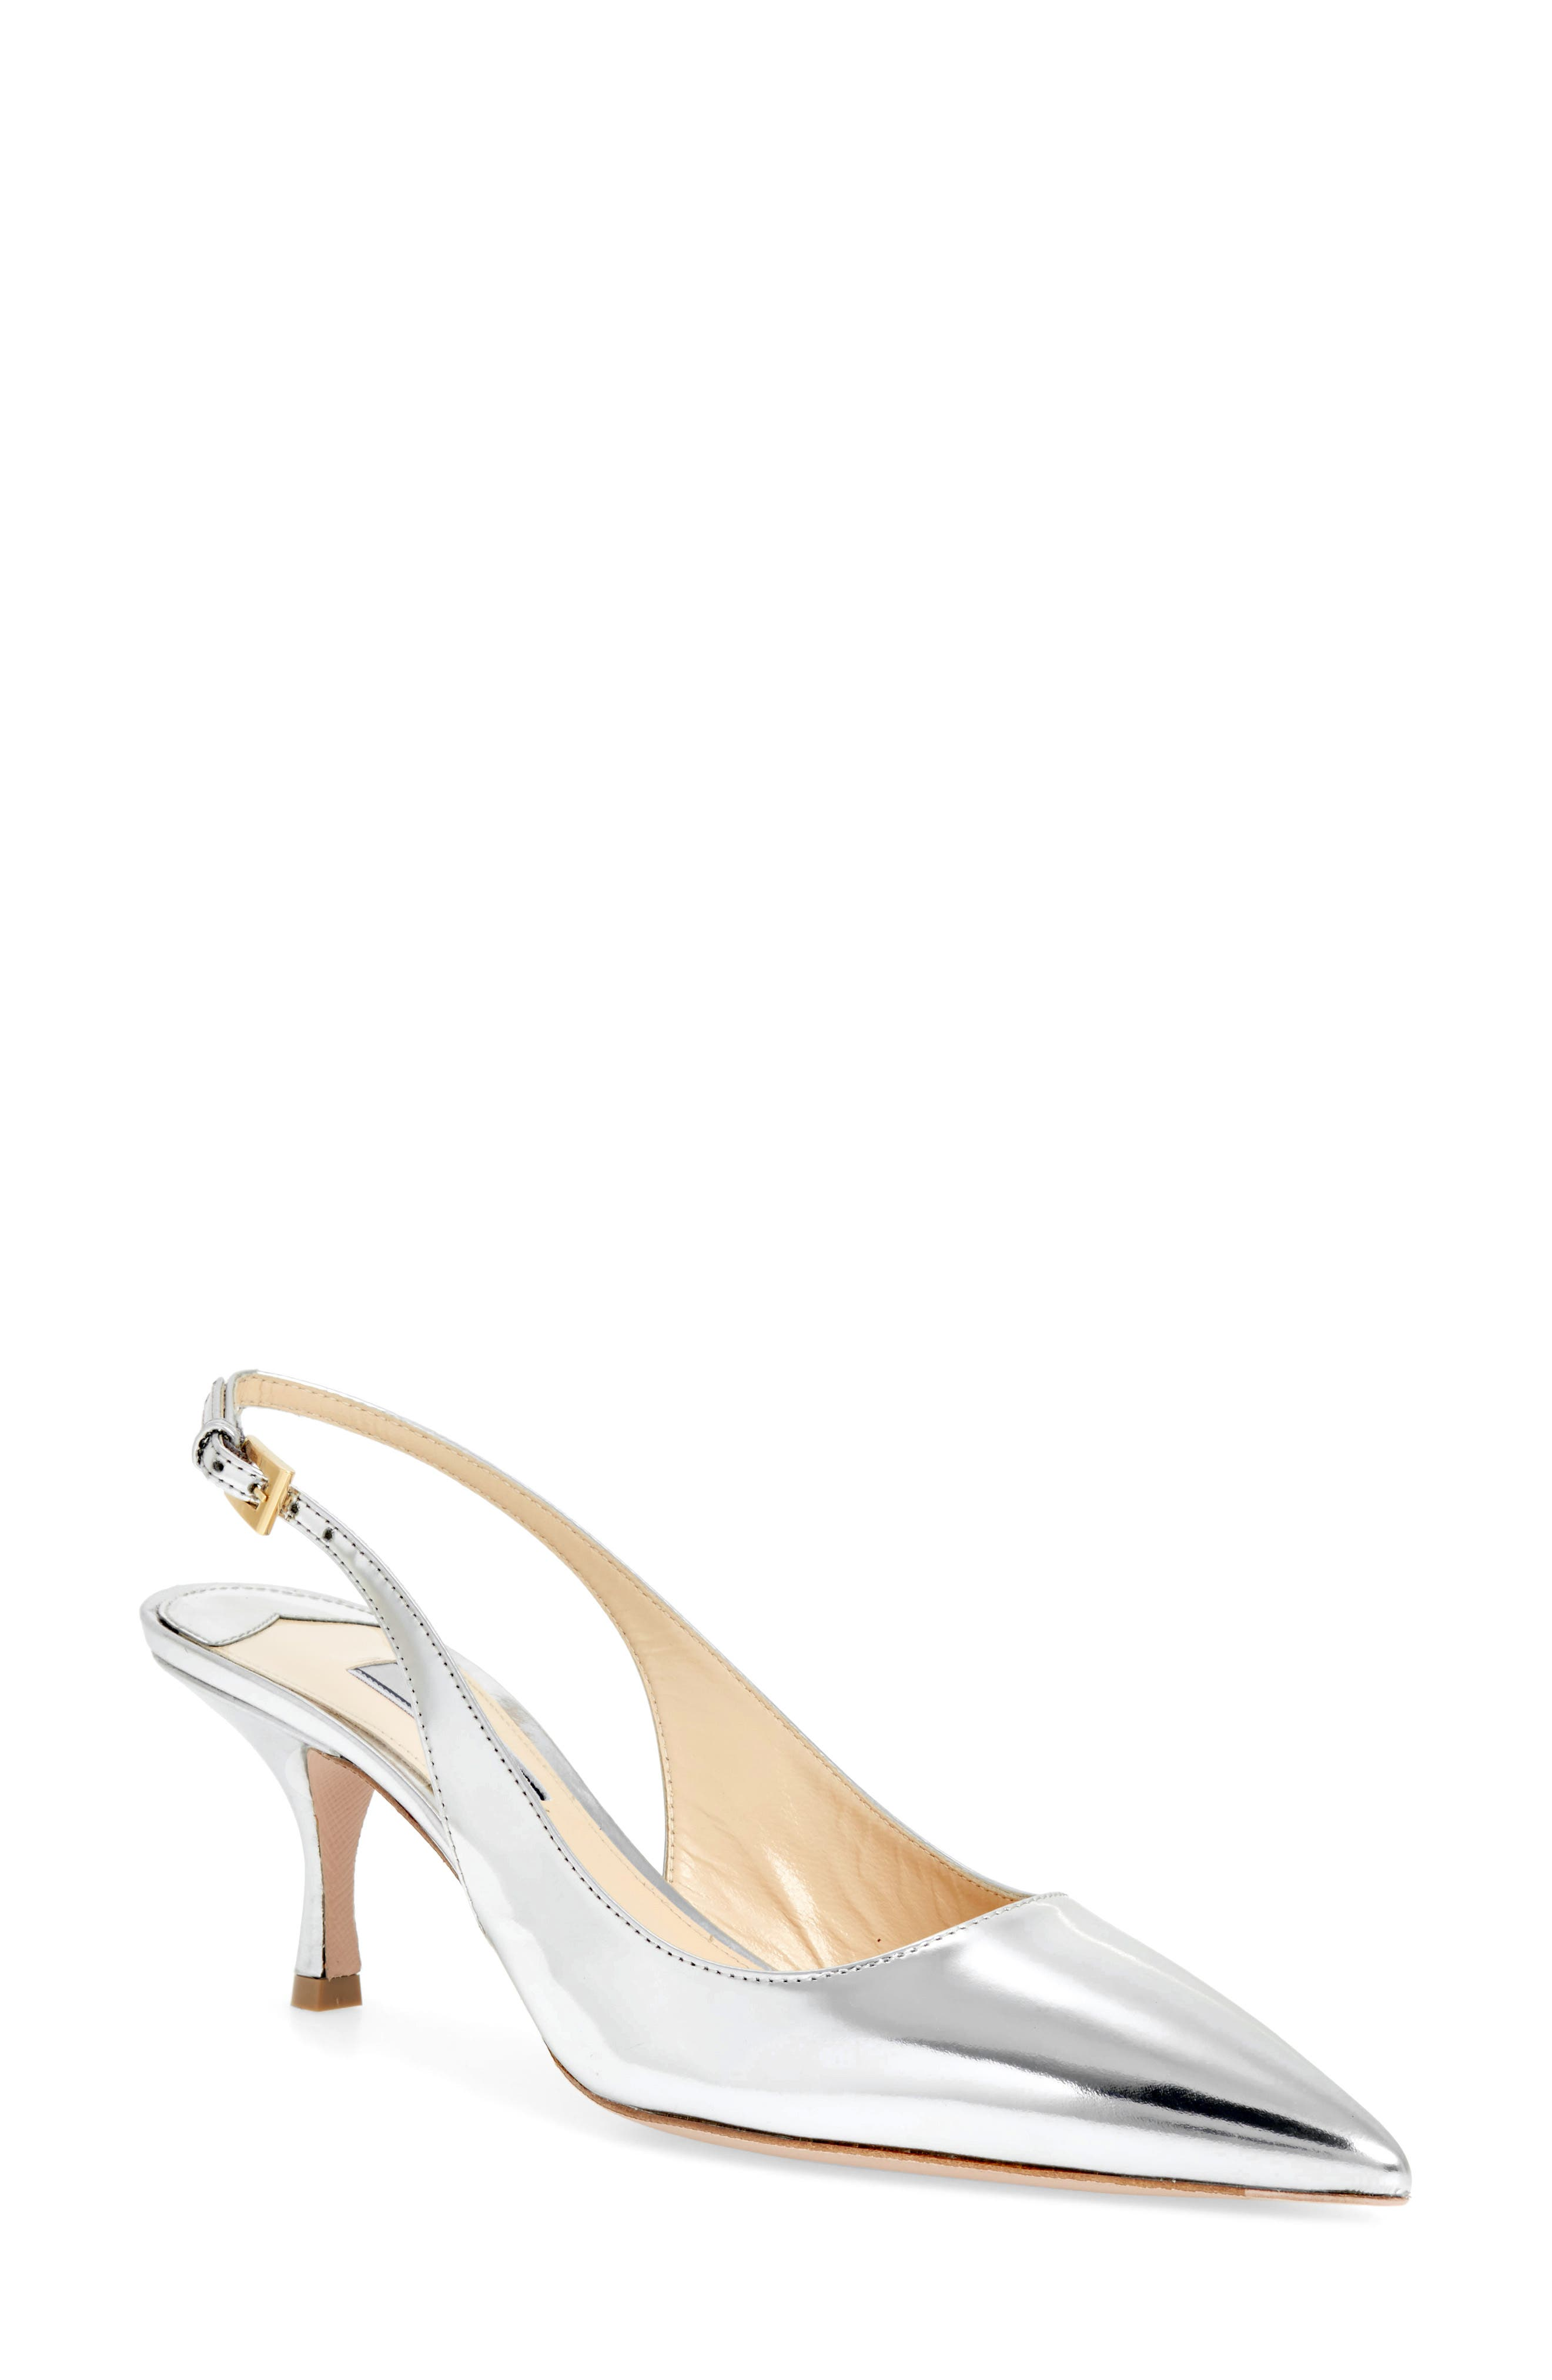 Pointy Toe Slingback Sandal,                         Main,                         color, Silver